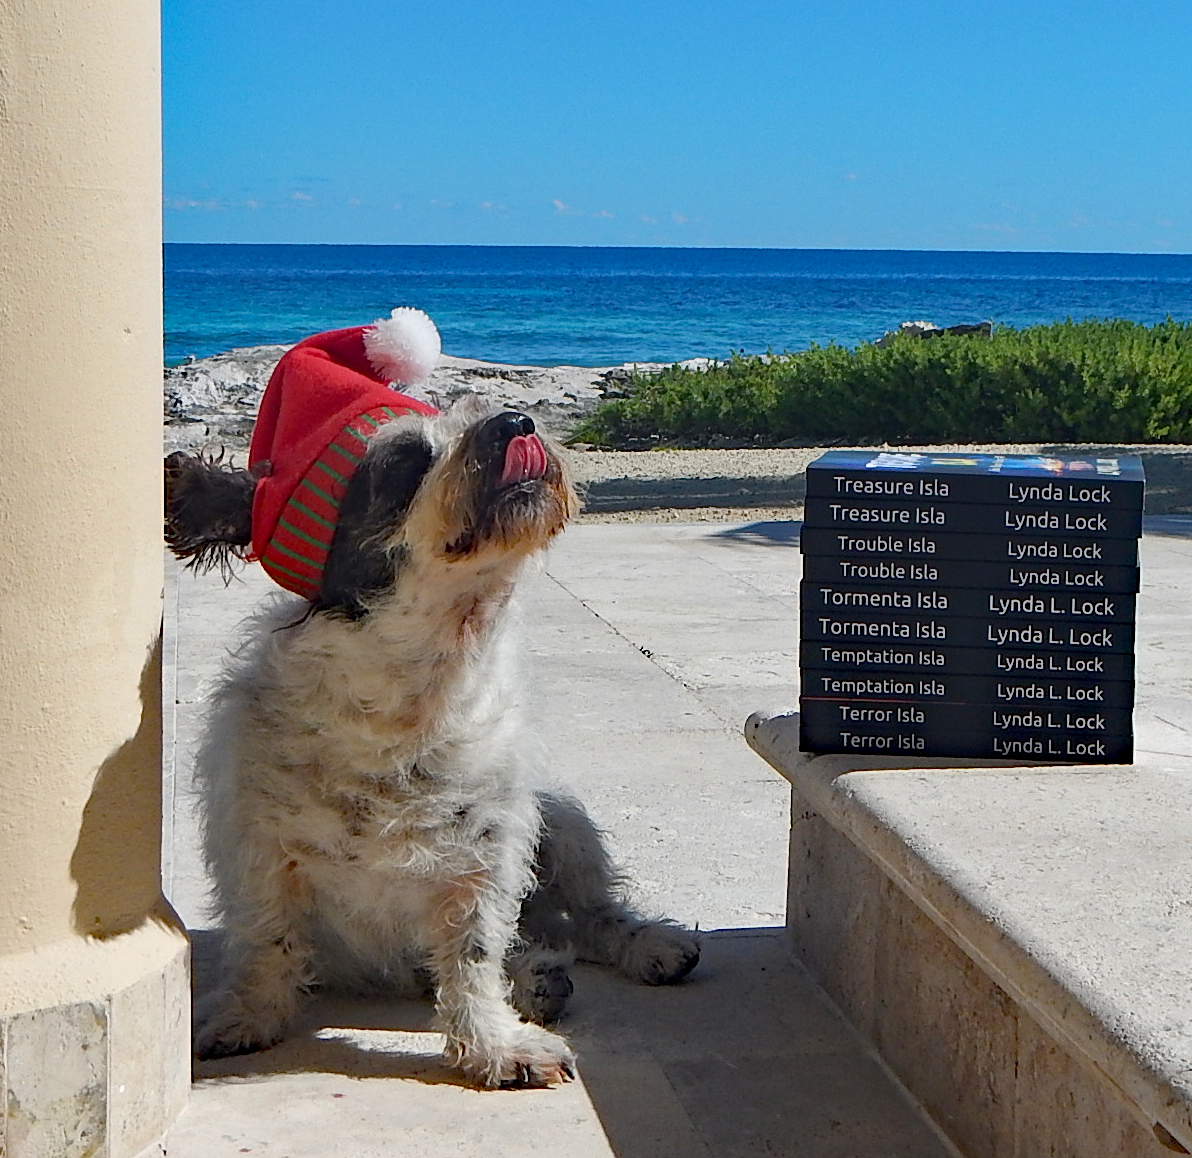 @sirtibblesdog Gud mornin' hooman and fur-babies. Will youse follows us back? Woof! Woof! Sparky, hero of the Isla Mujeres Mystery novels. #rescueismyfavouritebreed #dogsoftwitter #readerswanted #writerslift #mondaythoughts #mystery